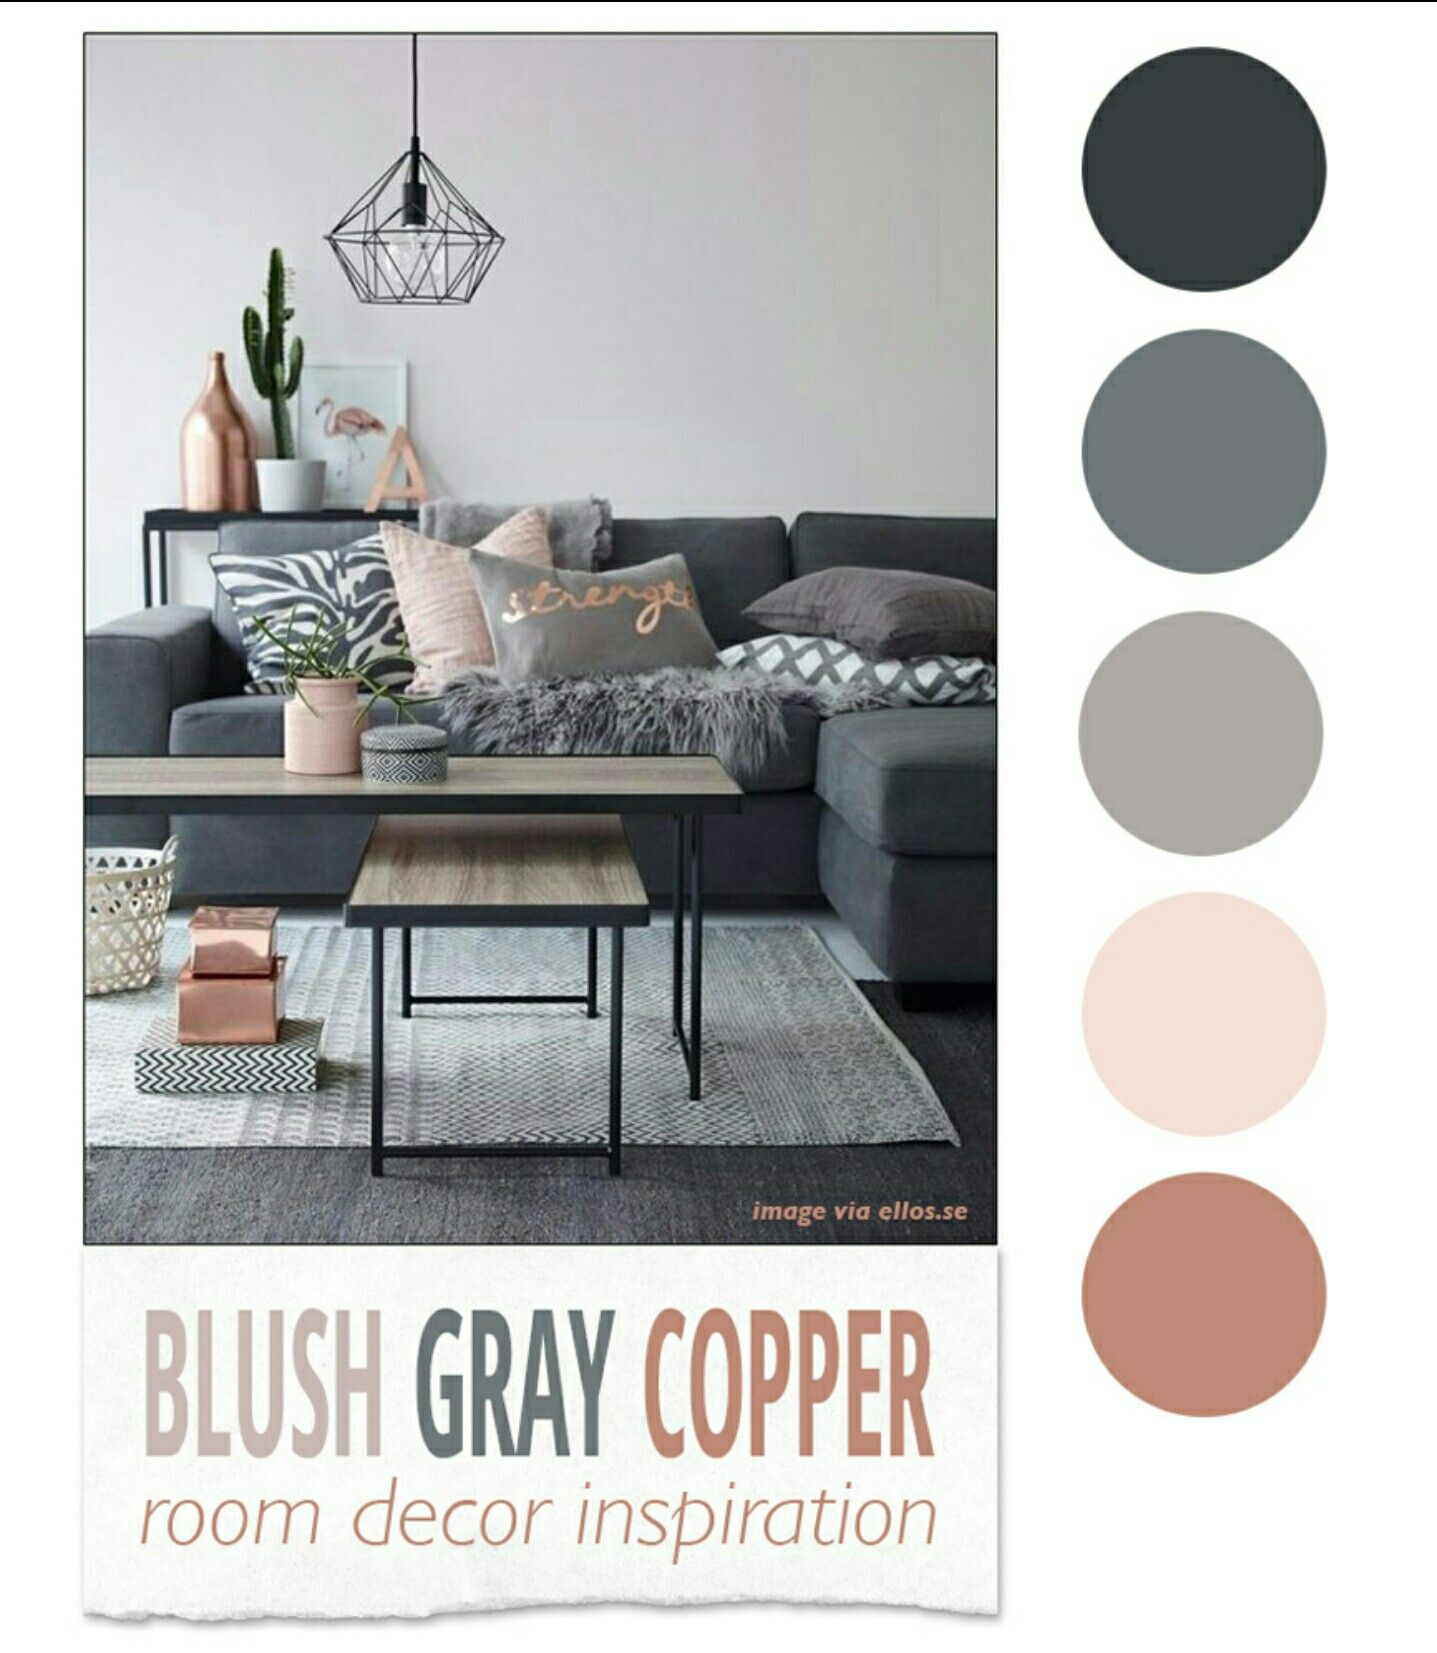 Best Rose Gold Black White And Grey Room Inspiration Interior Design Living Room Grey 400 x 300